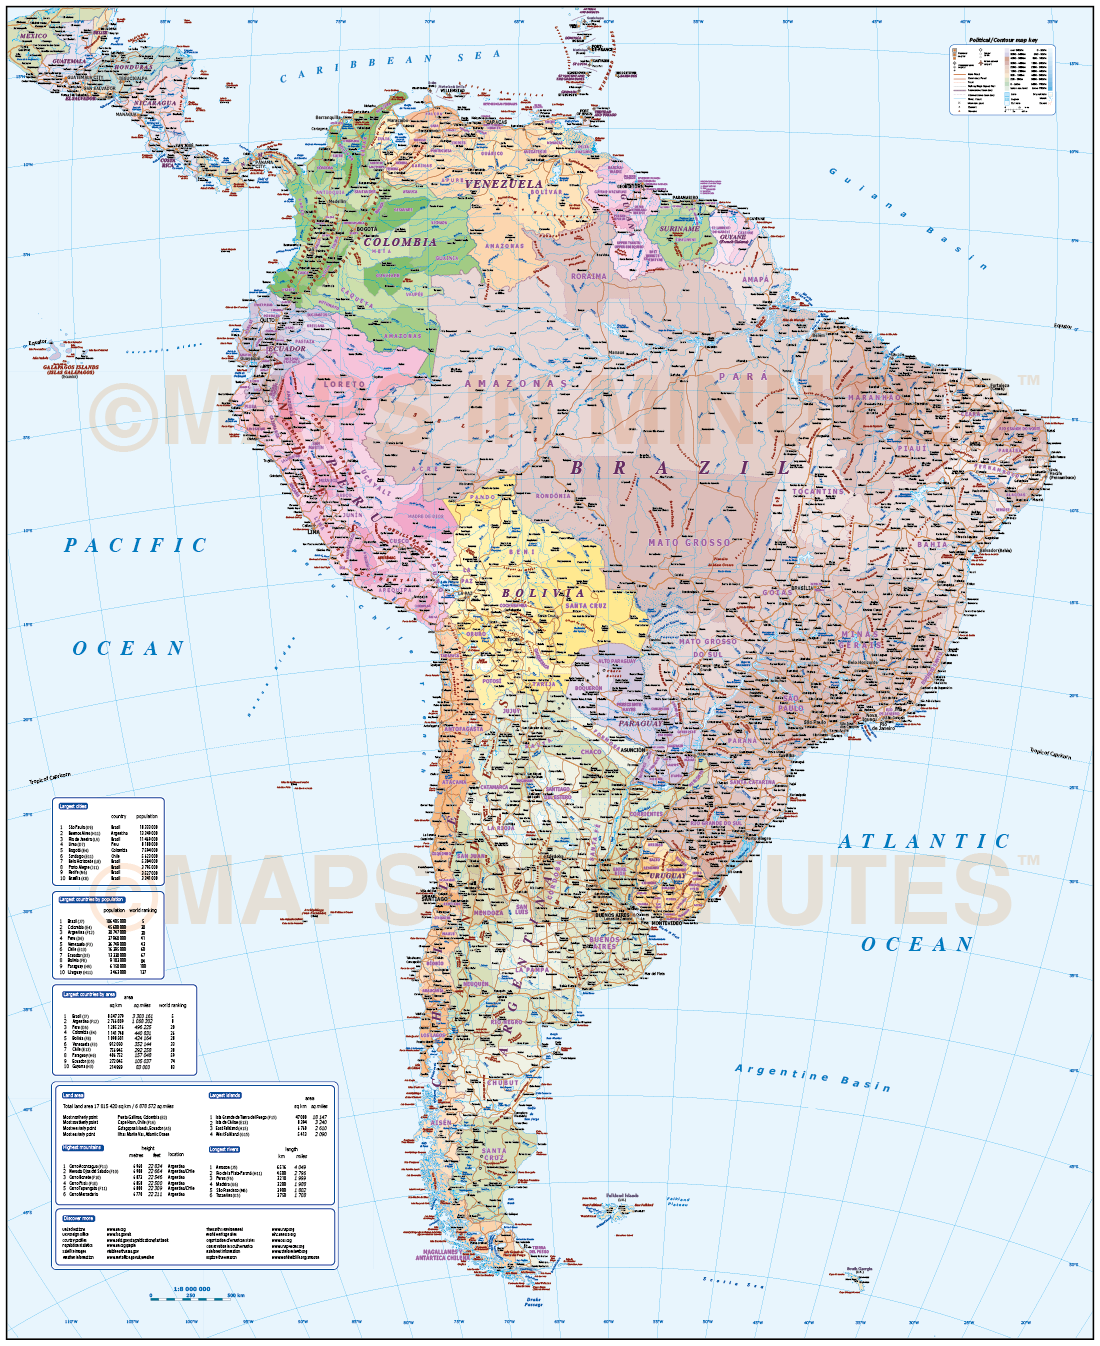 Digital vector South America map. Deluxe Political Road & Rail Map on library south america, features south america, road map buenos aires, road map anguilla, road map biology, landlocked country south america, water south america, lake nicaragua map central america, road map suriname, road map martinique, hotels south america, driving in columbia south america, road map brazil, blog south america, destination south america, tourist south america, road map scandinavia, road map zimbabwe, camping south america, trip south america,